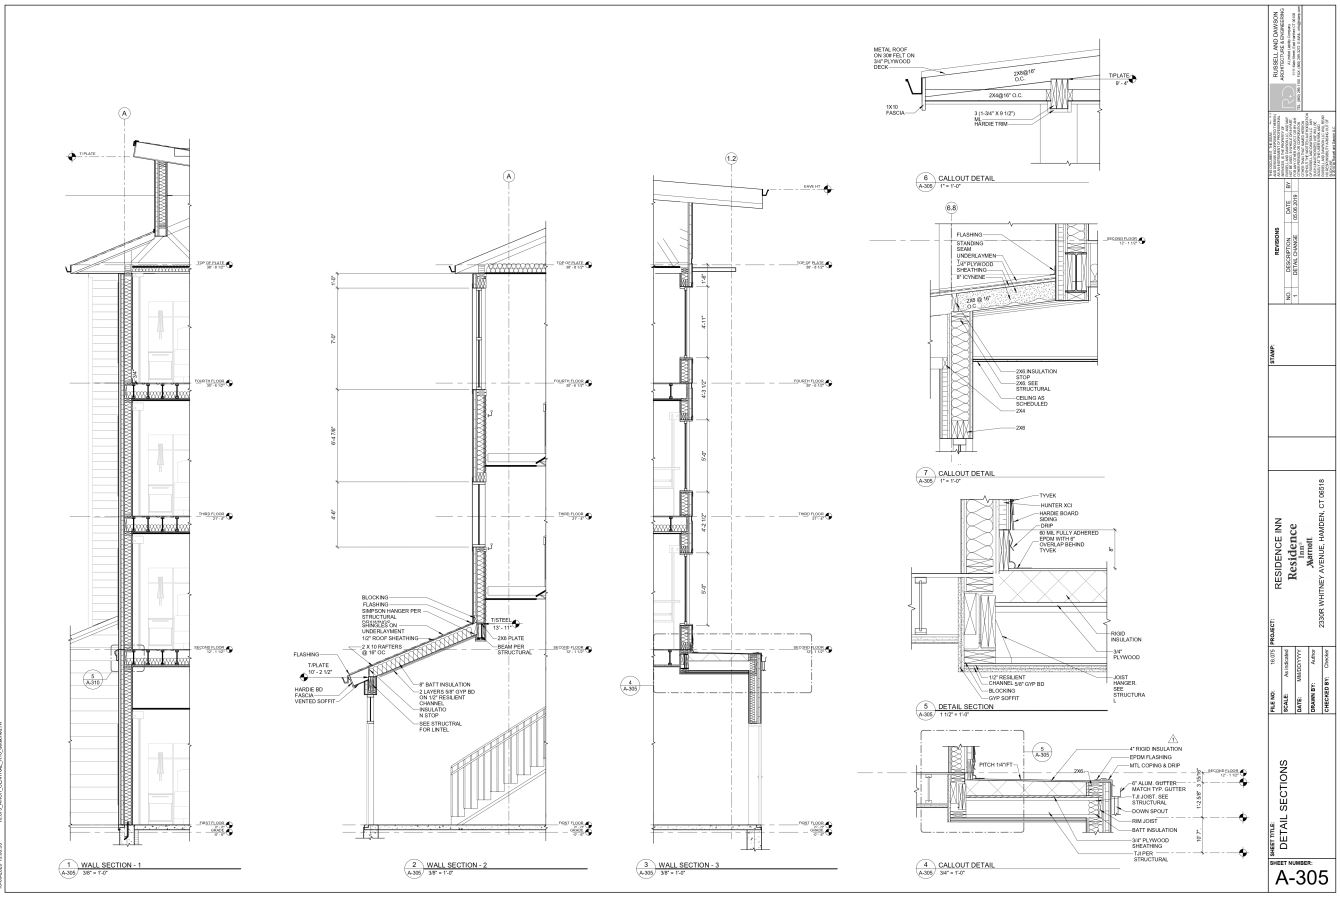 Detailed Wall Section Drawings